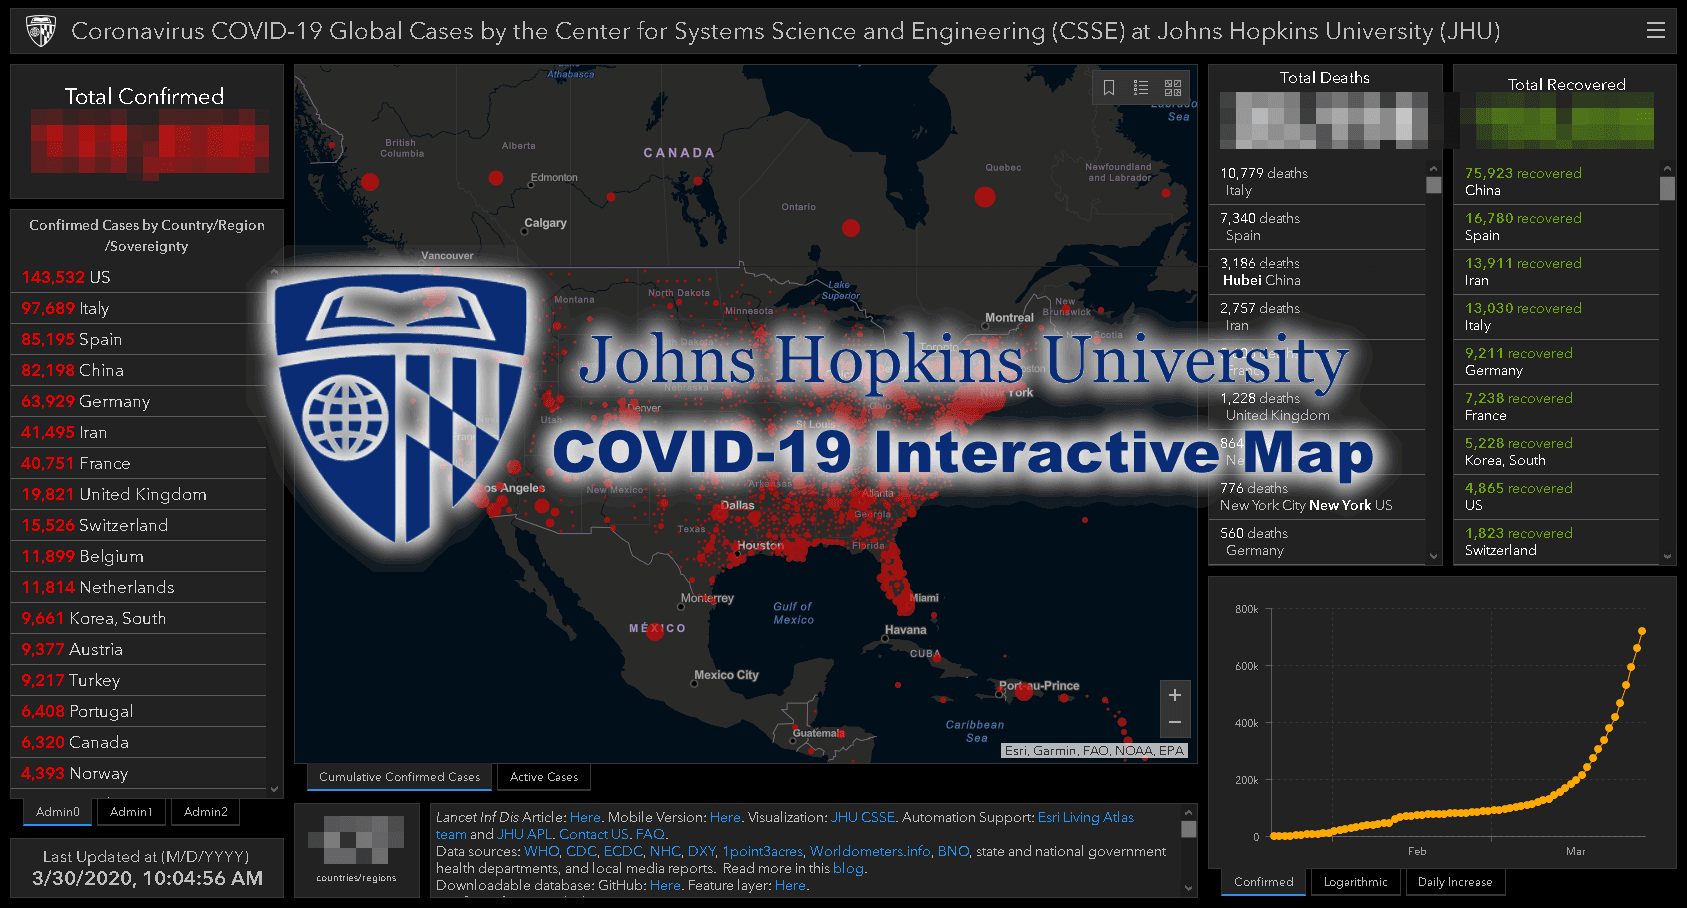 Johns Hopkins COVID-19 Interactive Map